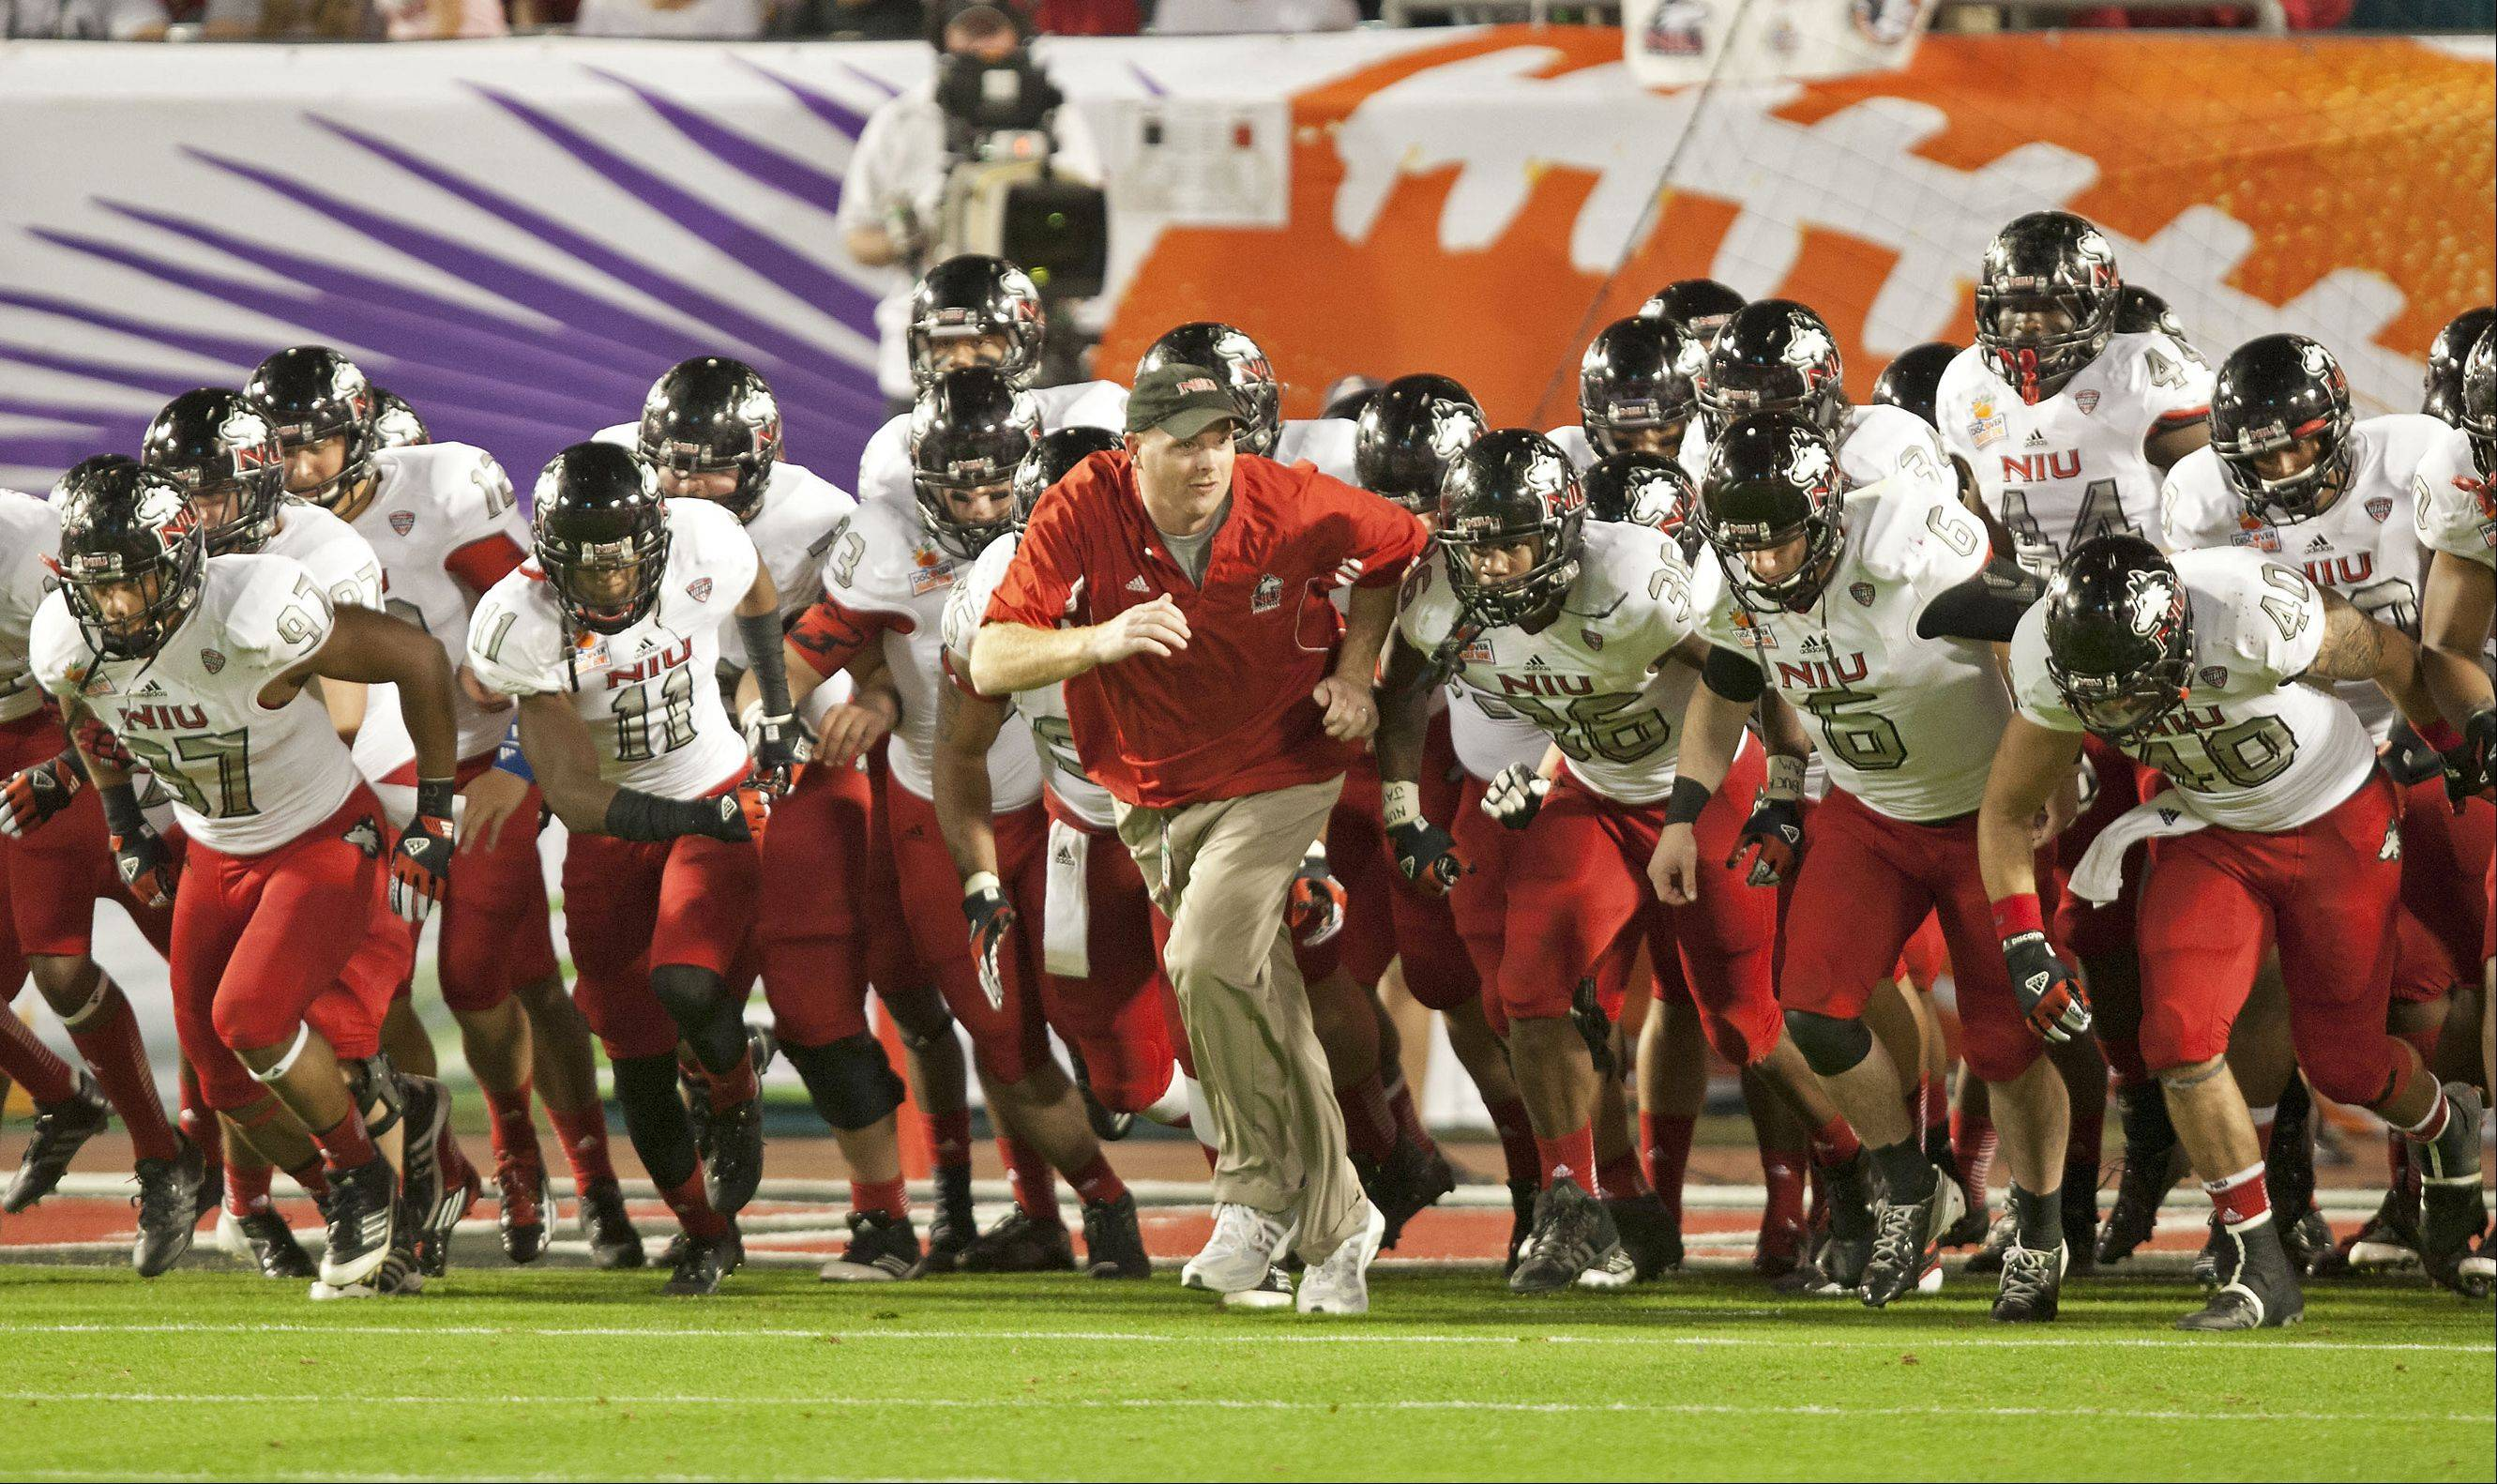 Northern Illinois University head coach Rod Carey will have 14 starters returning next fall, including 8 on offense.